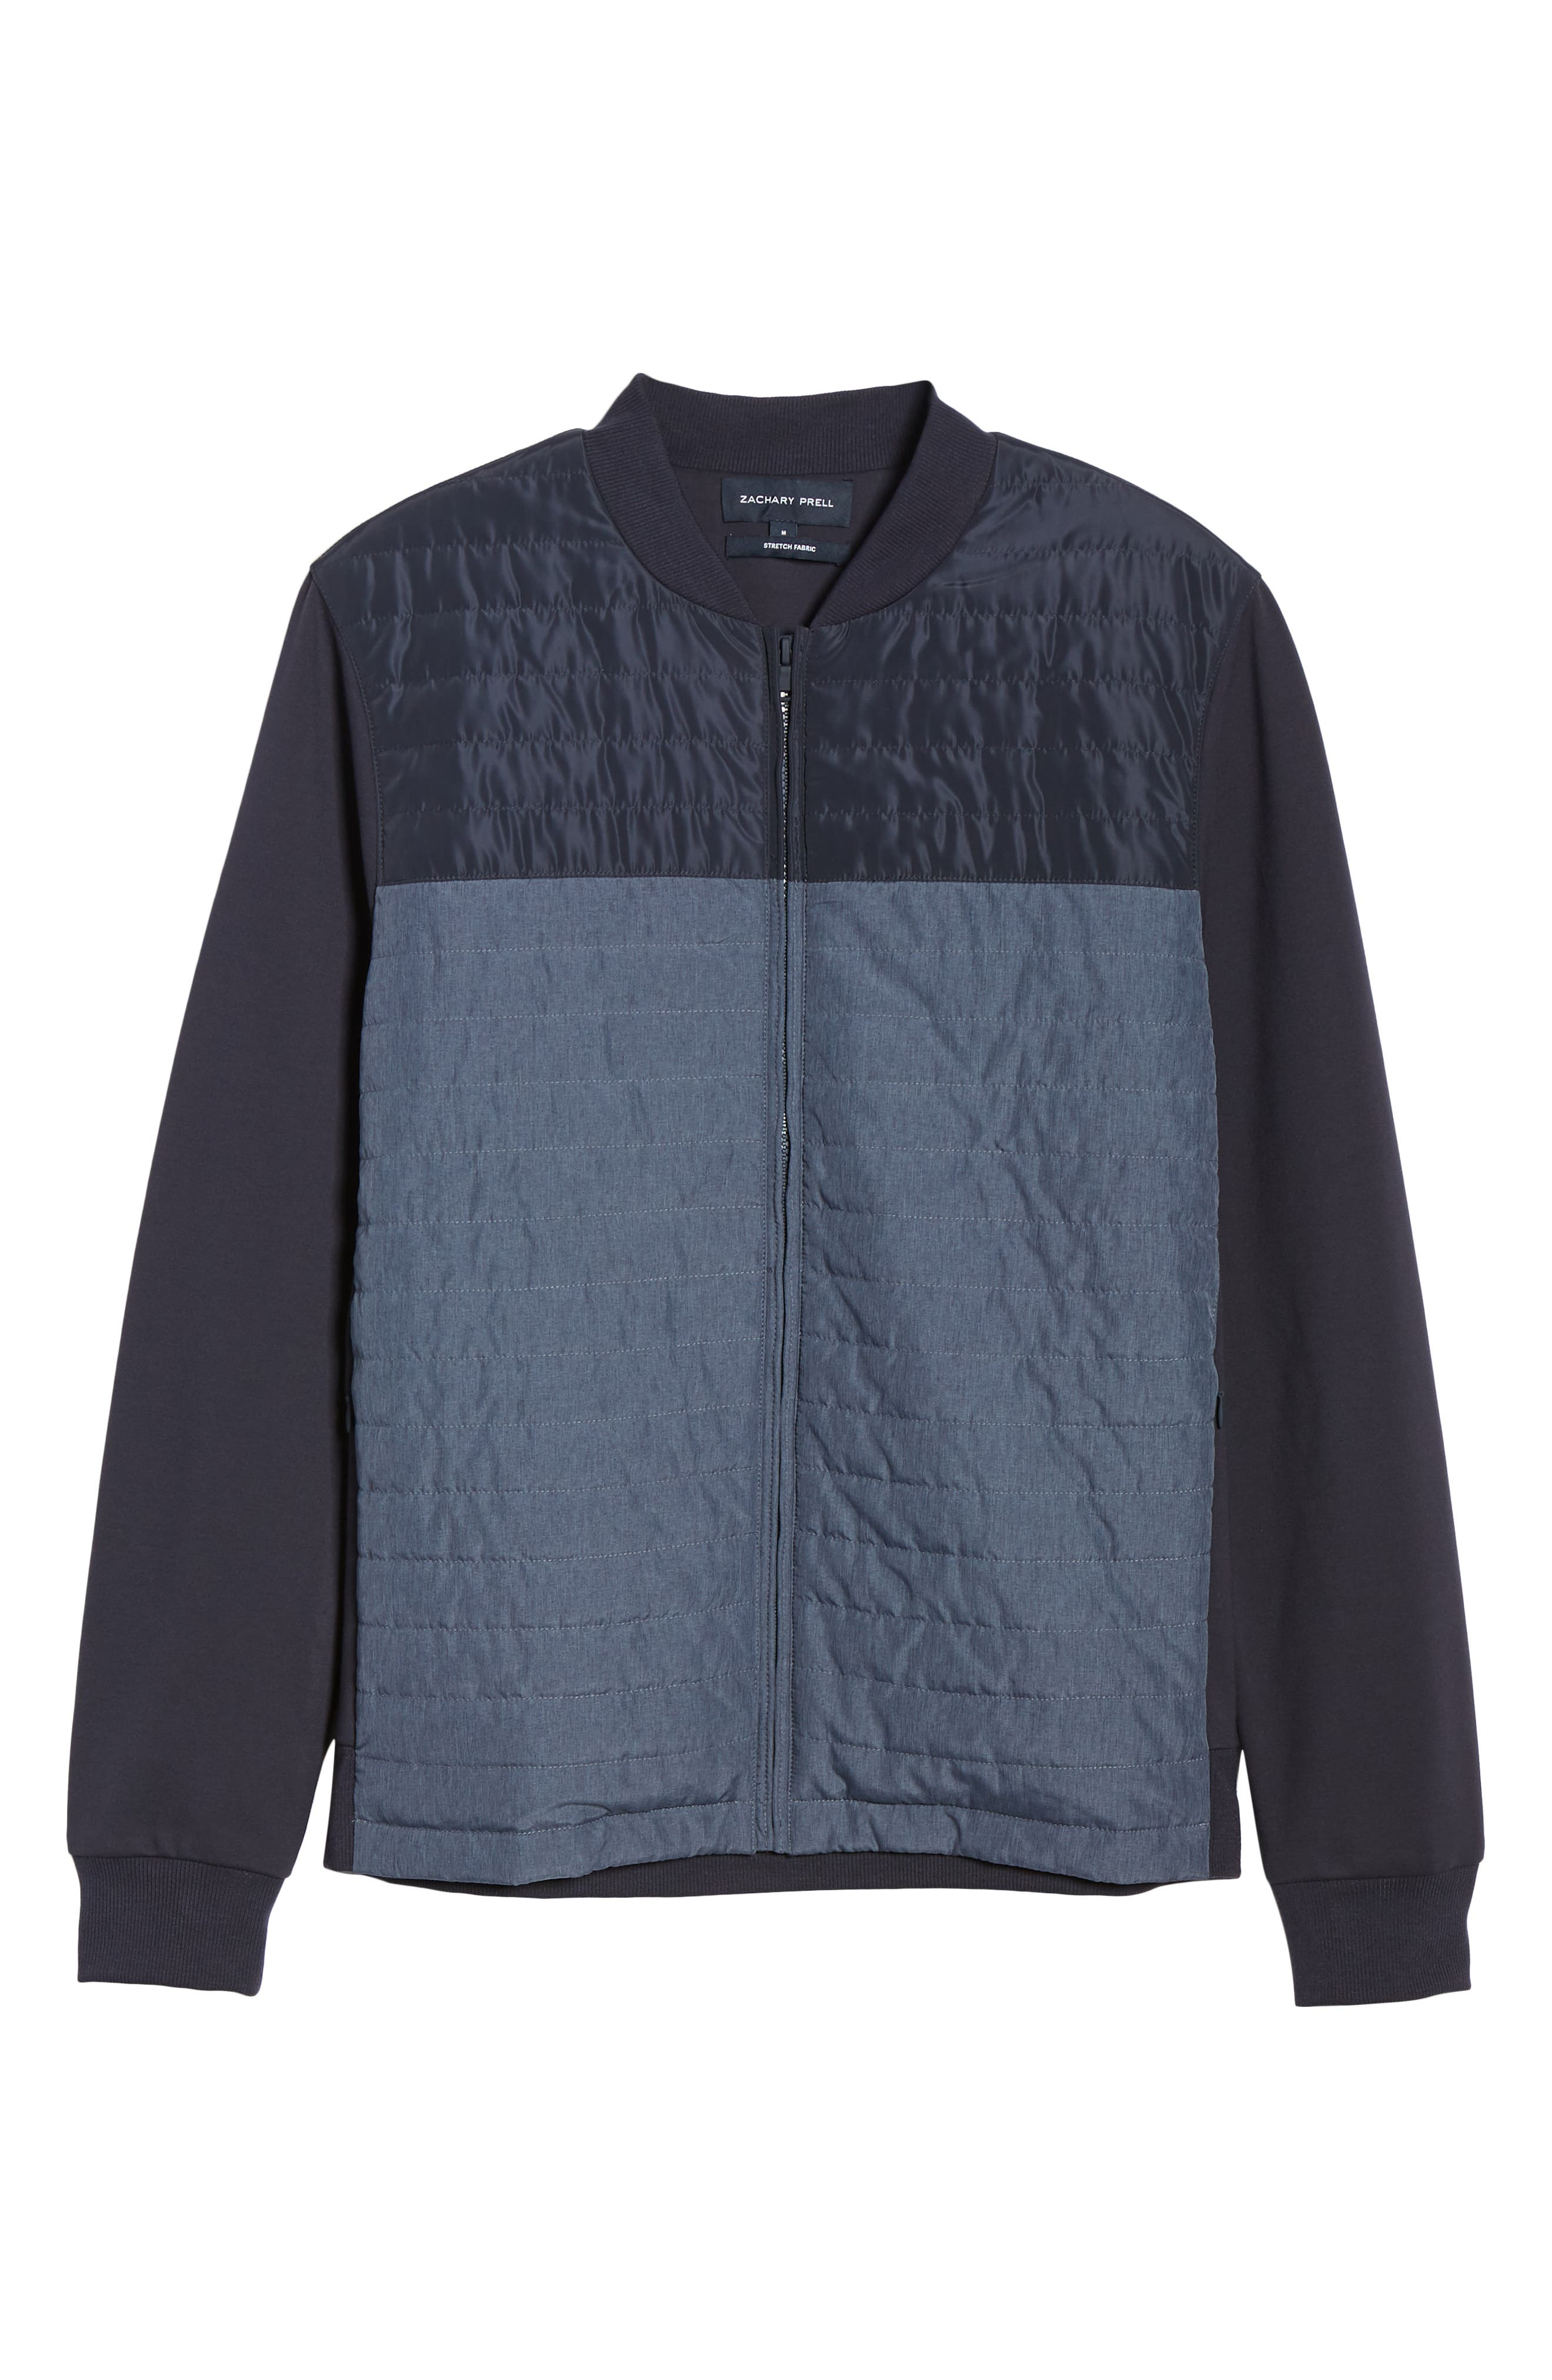 ZACHARY PRELL, Montauk Quilted Bomber Jacket, Alternate thumbnail 6, color, NAVY